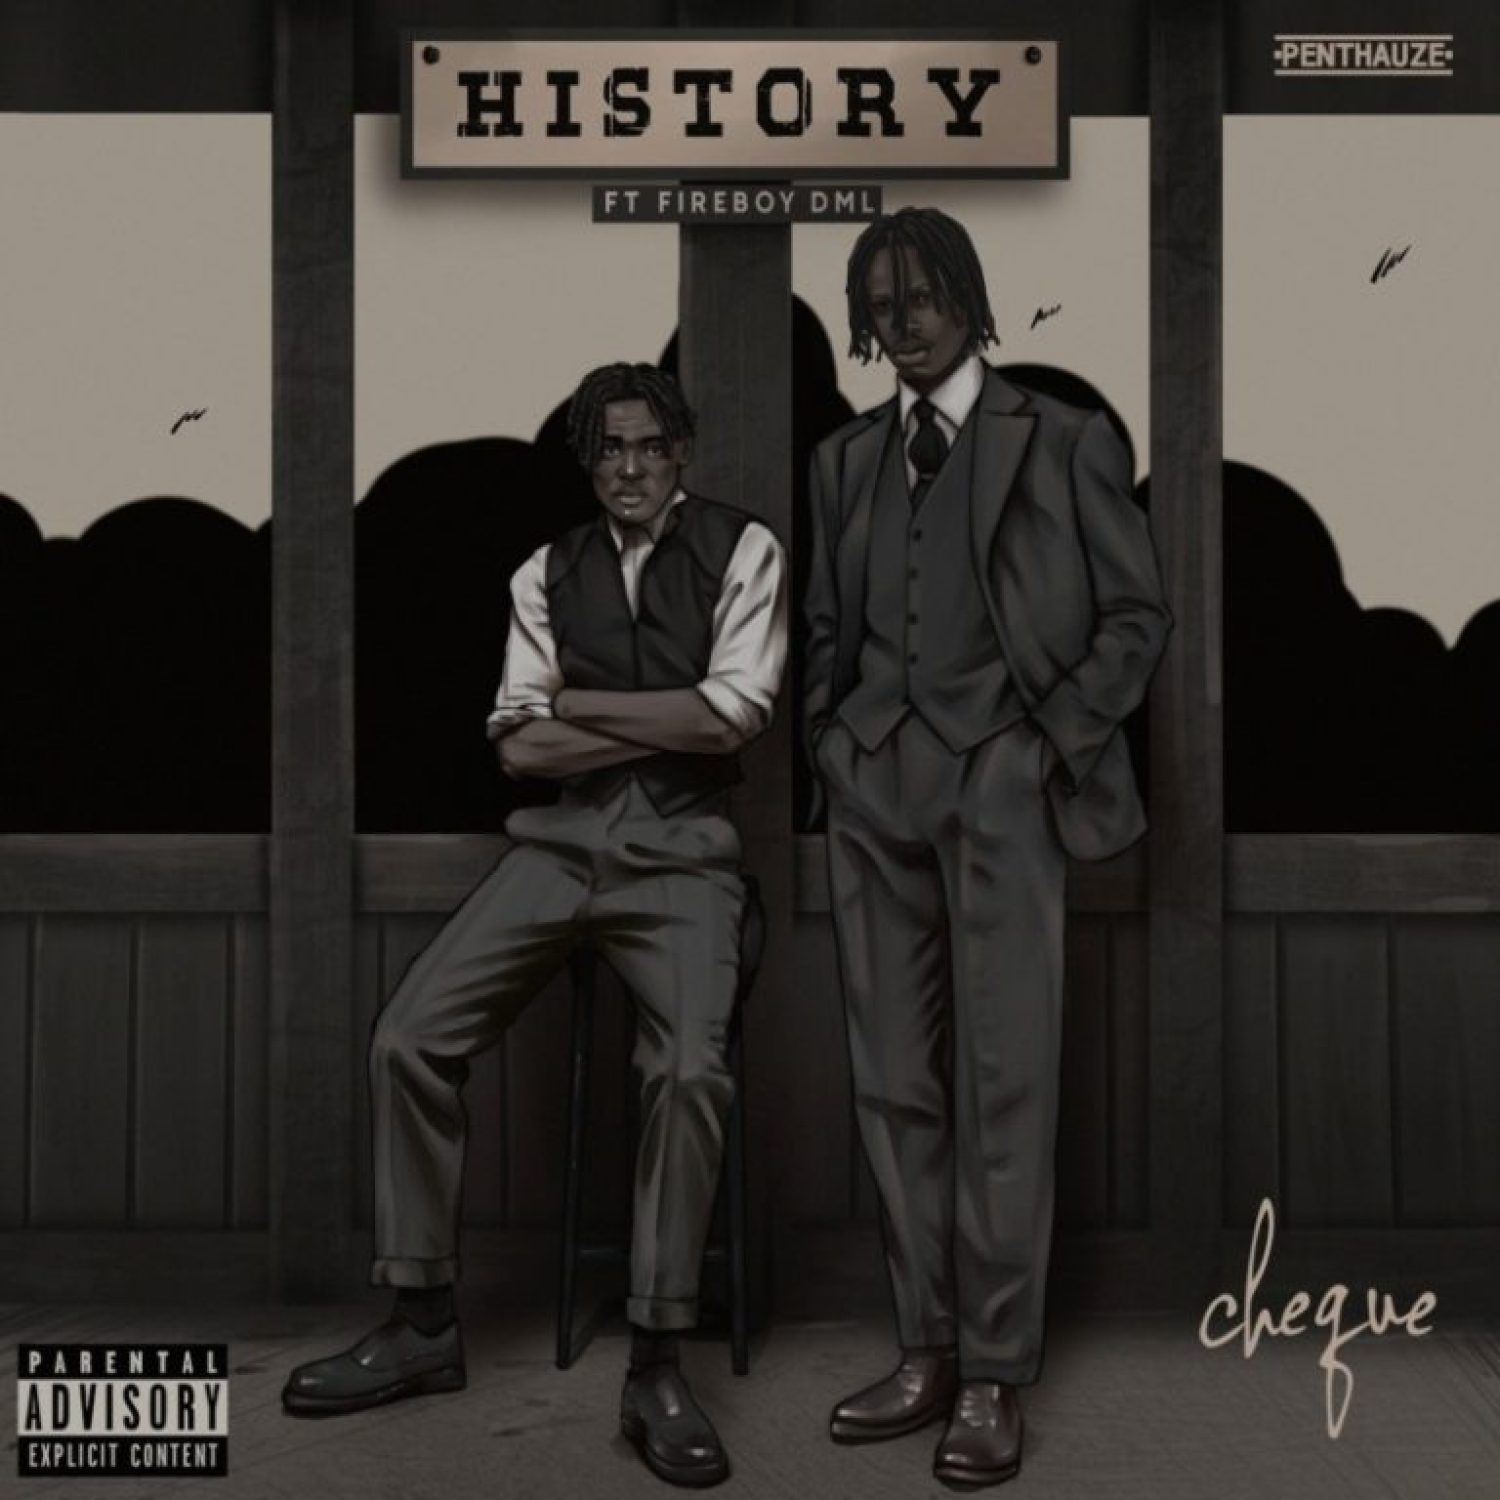 DOWNLOAD MP3: Cheque – History ft. Fireboy DML AUDIO 320kbps